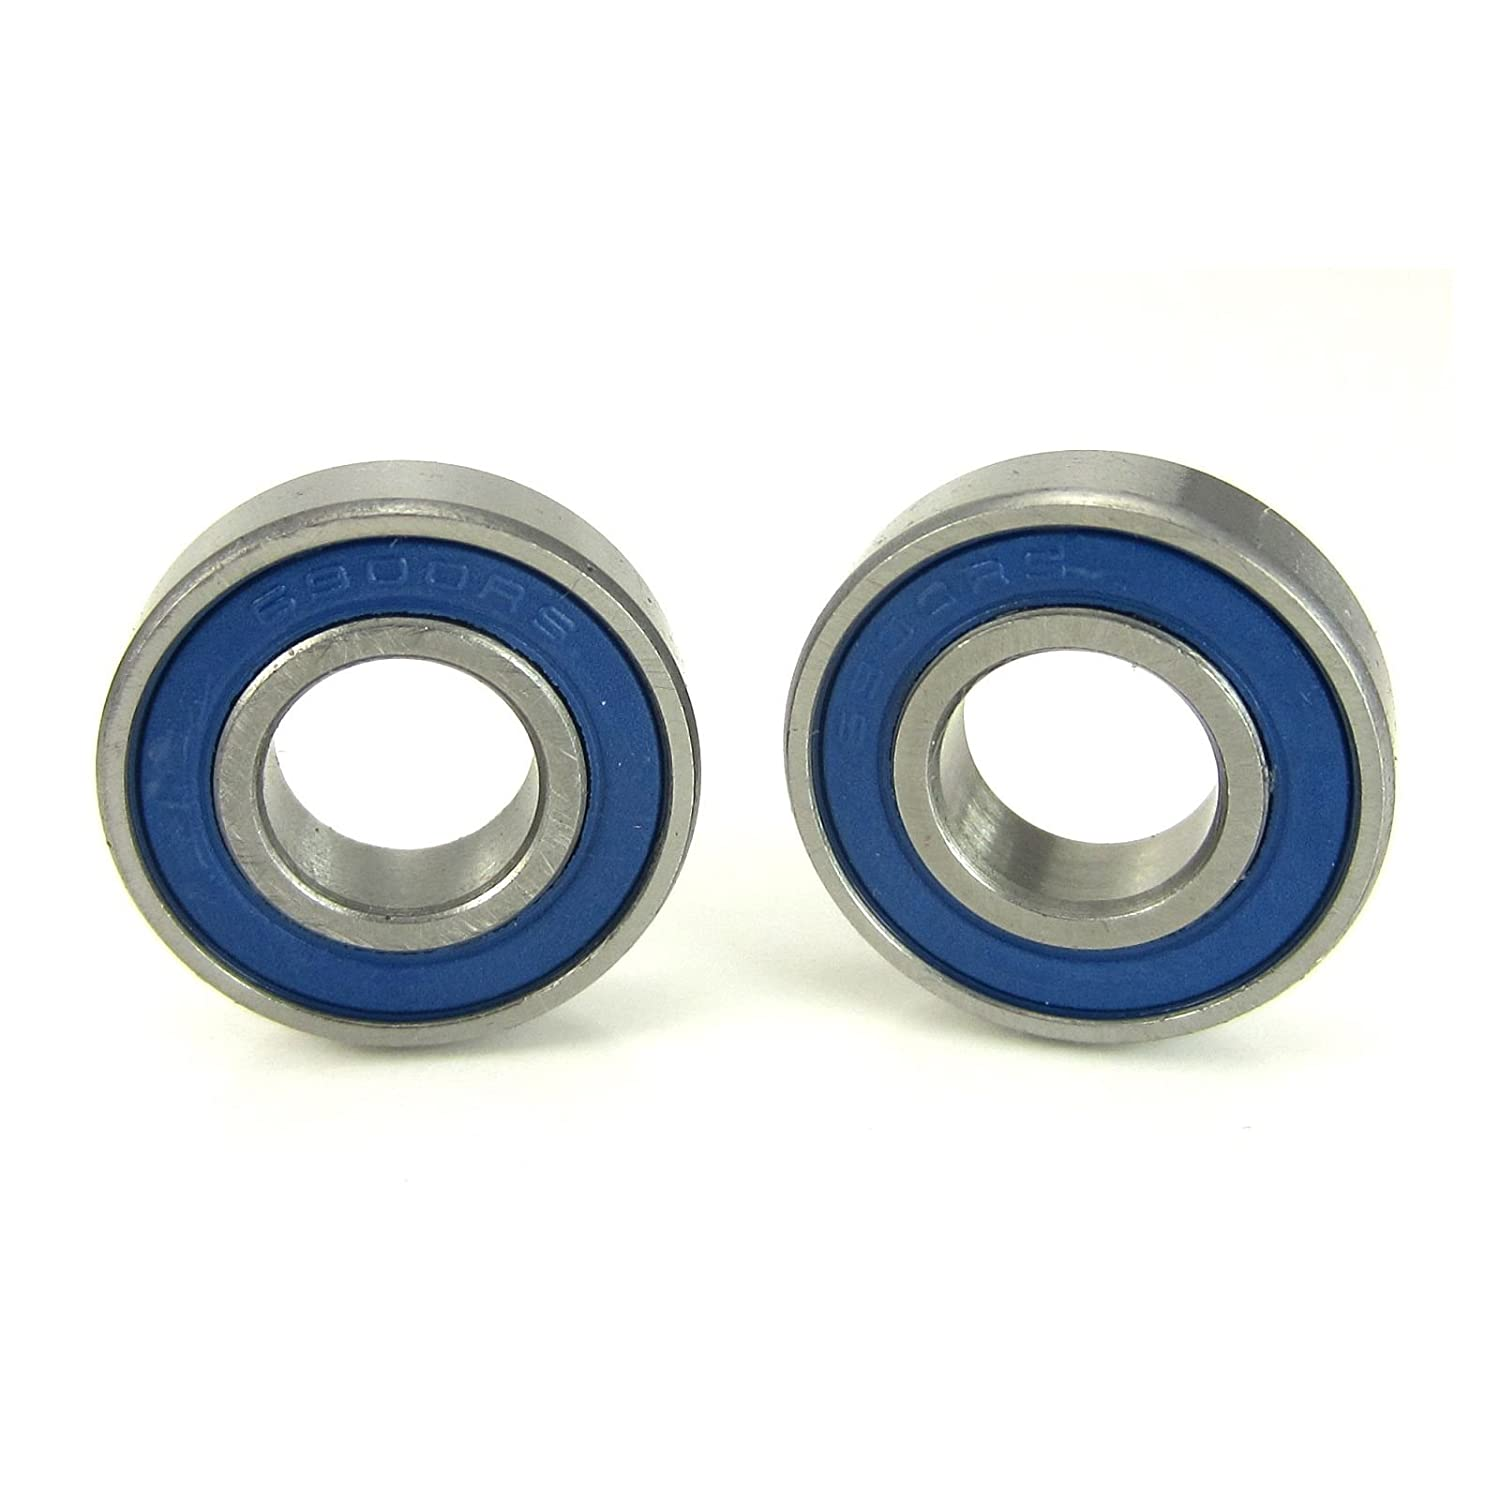 10x22x6mm Precision Ball Bearings ABEC 3 Blue Rubber Seals (2) TRB RC